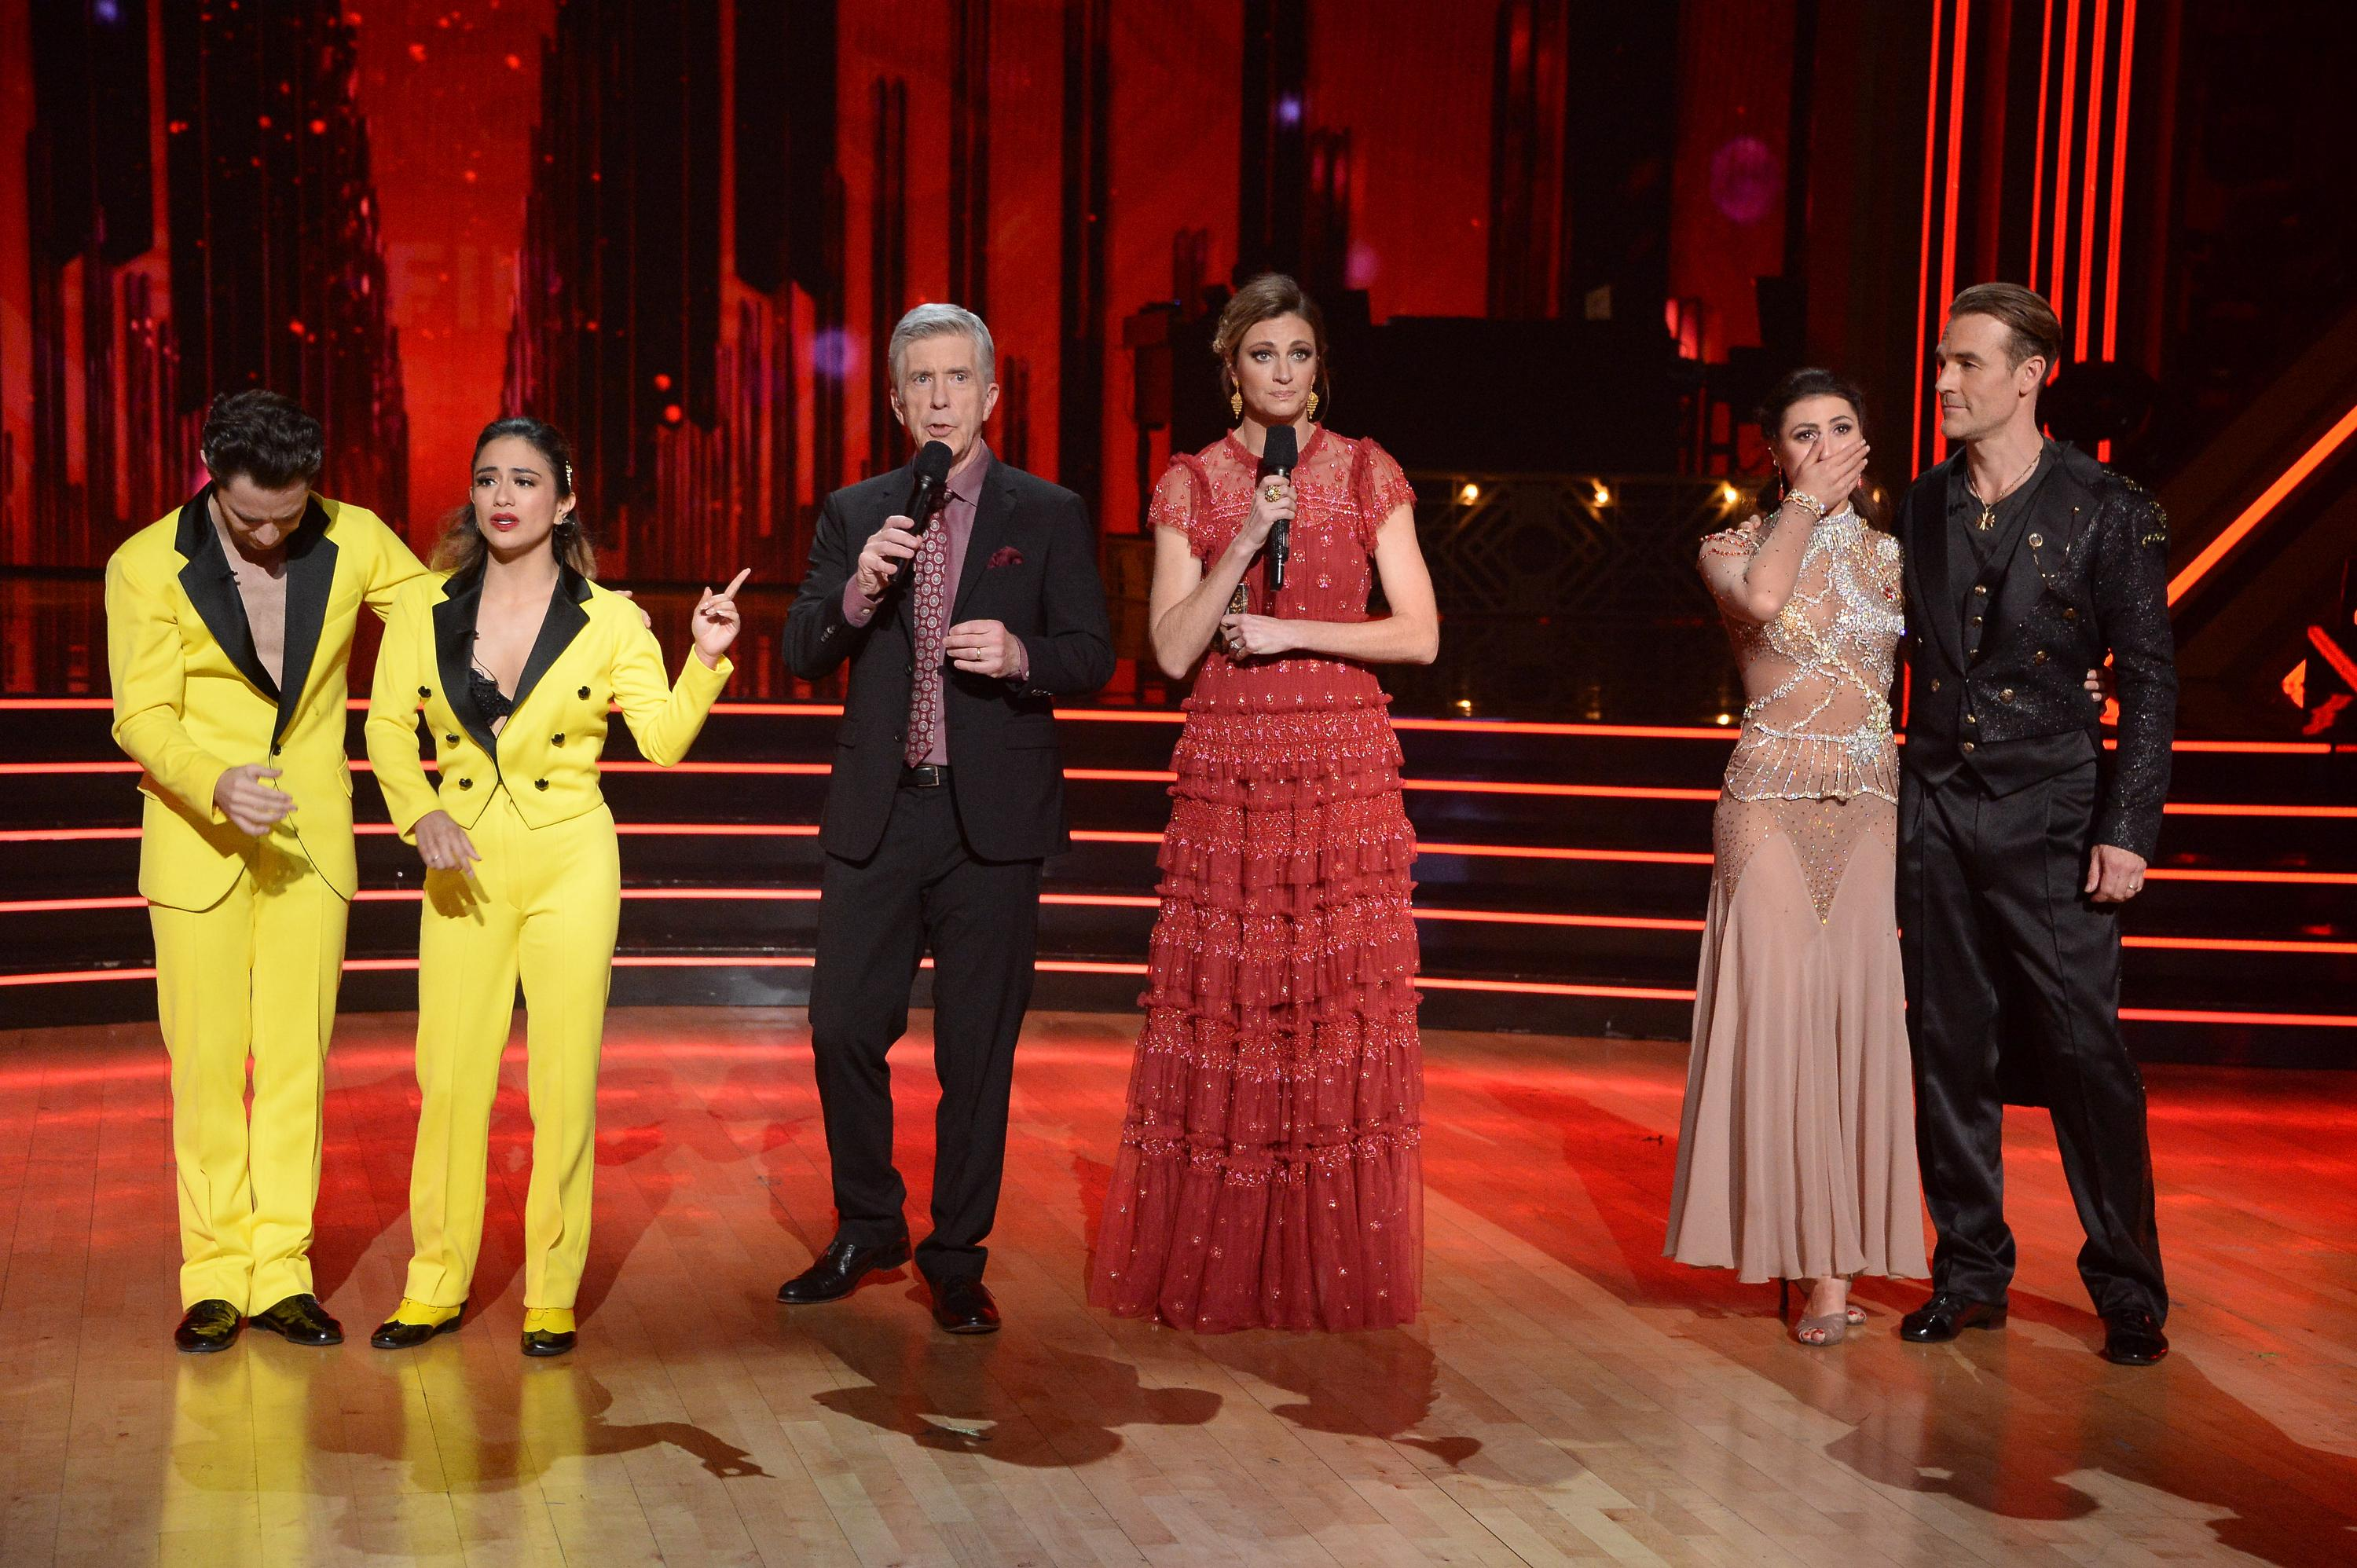 DWTS Tom Bergeron, Erin Andrews Fired